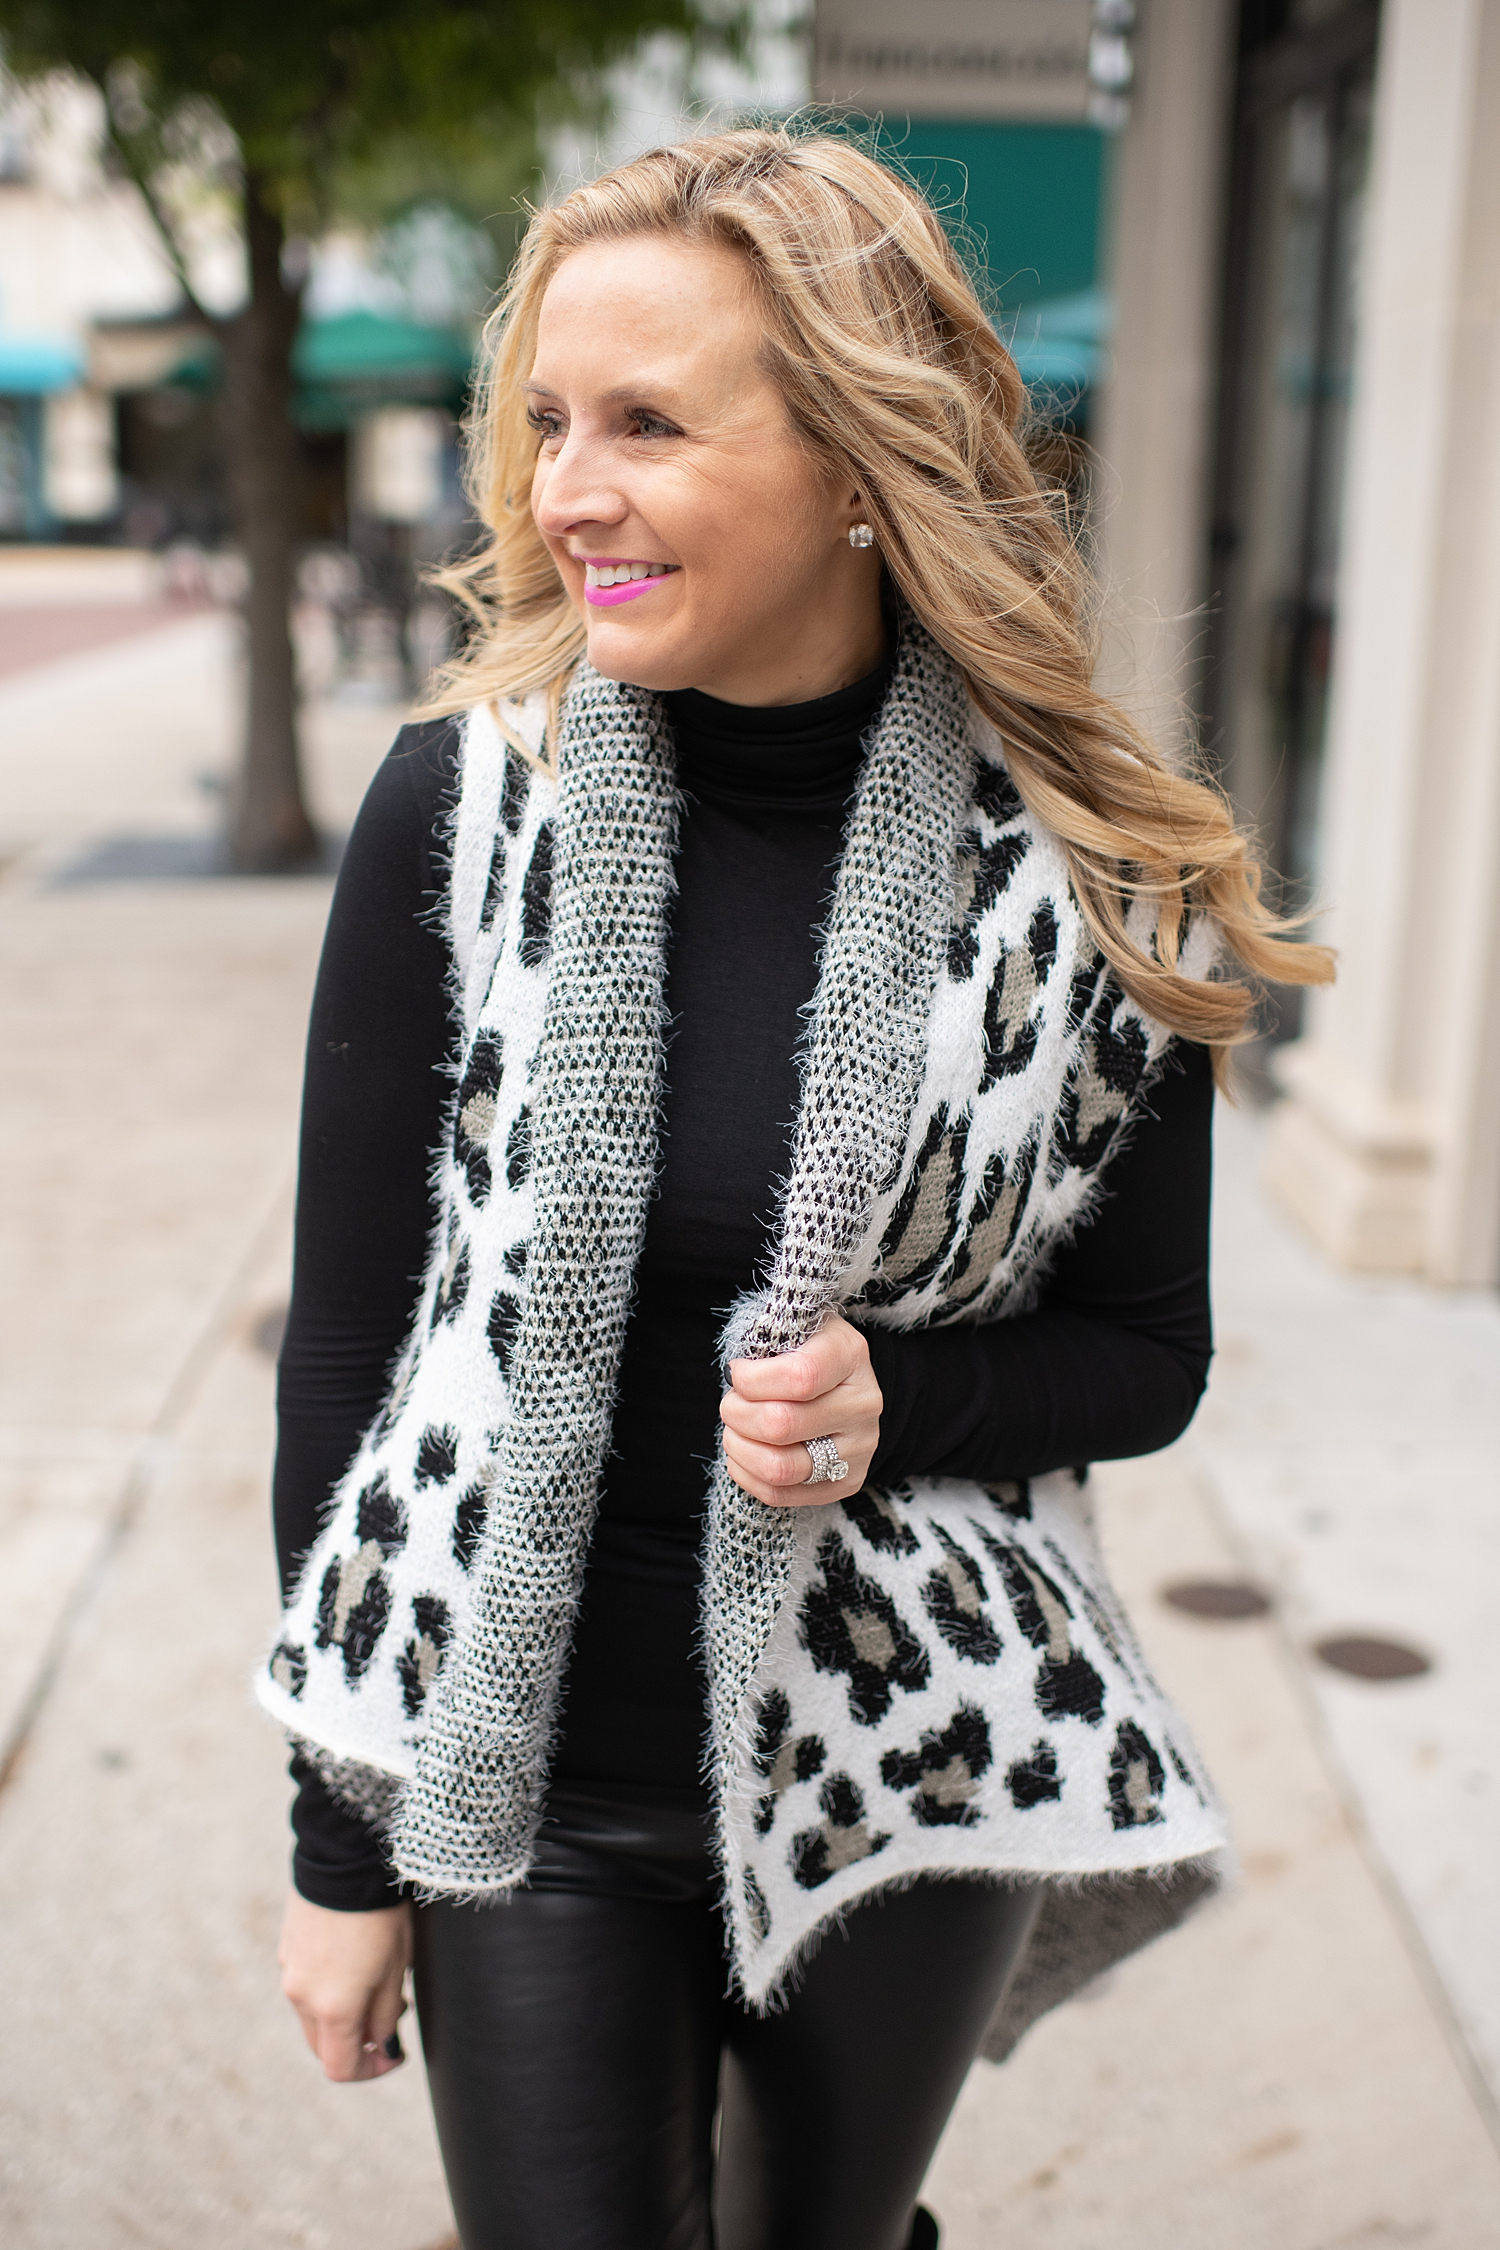 Fancy Ashley x Social Threads collection featured by top Houston fashion blogger, Fancy Ashley: image of a woman wearing a Social Threads Leopard vest, Social Threads faux leather leggings, Social Threads plaid clutch and Vince Camuto Over the Knees Boots